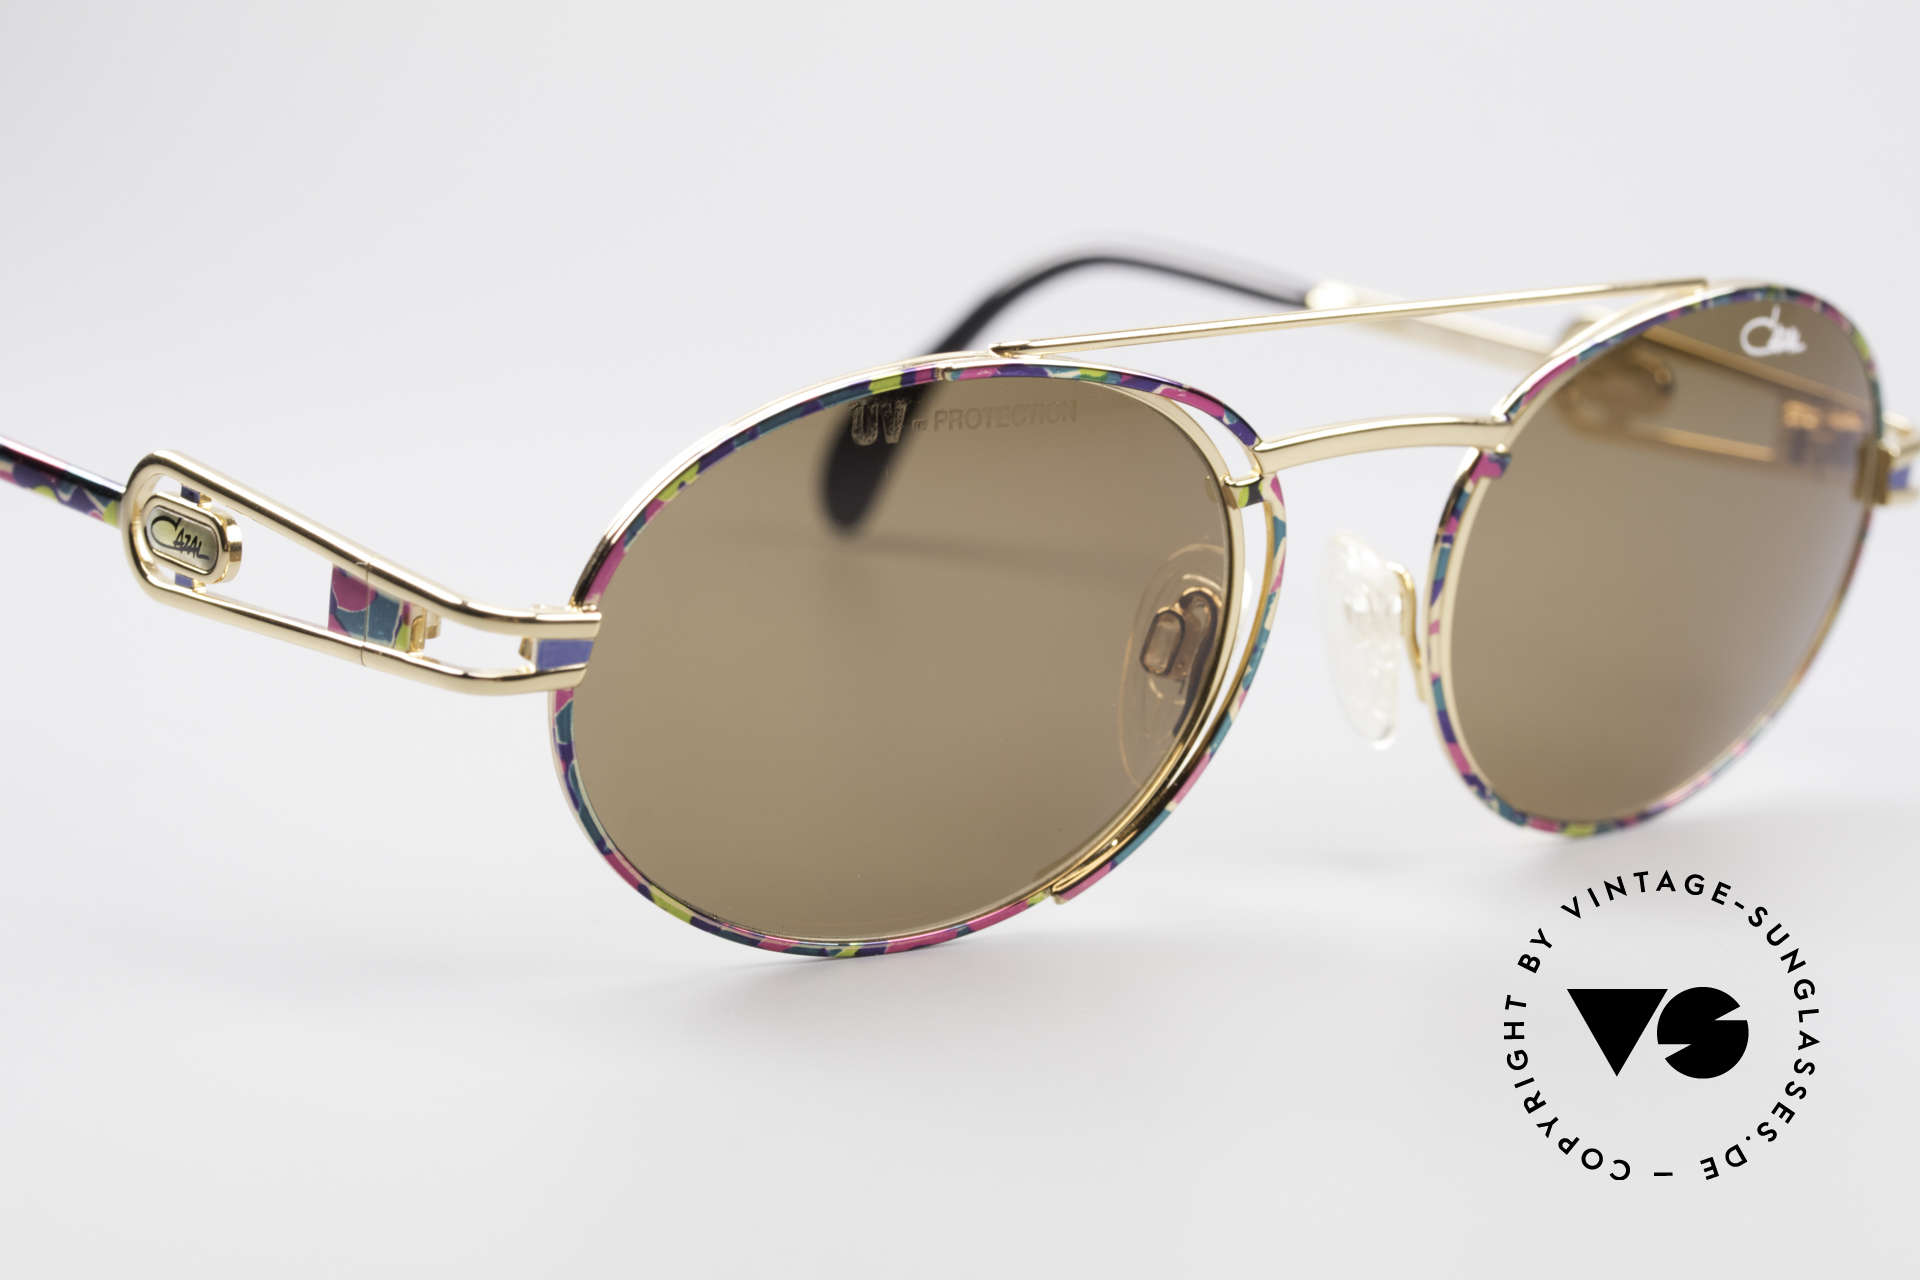 Cazal 965 90's Steampunk Style Shades, NO RETRO sunglasses, but an authentic old ORIGINAL, Made for Men and Women